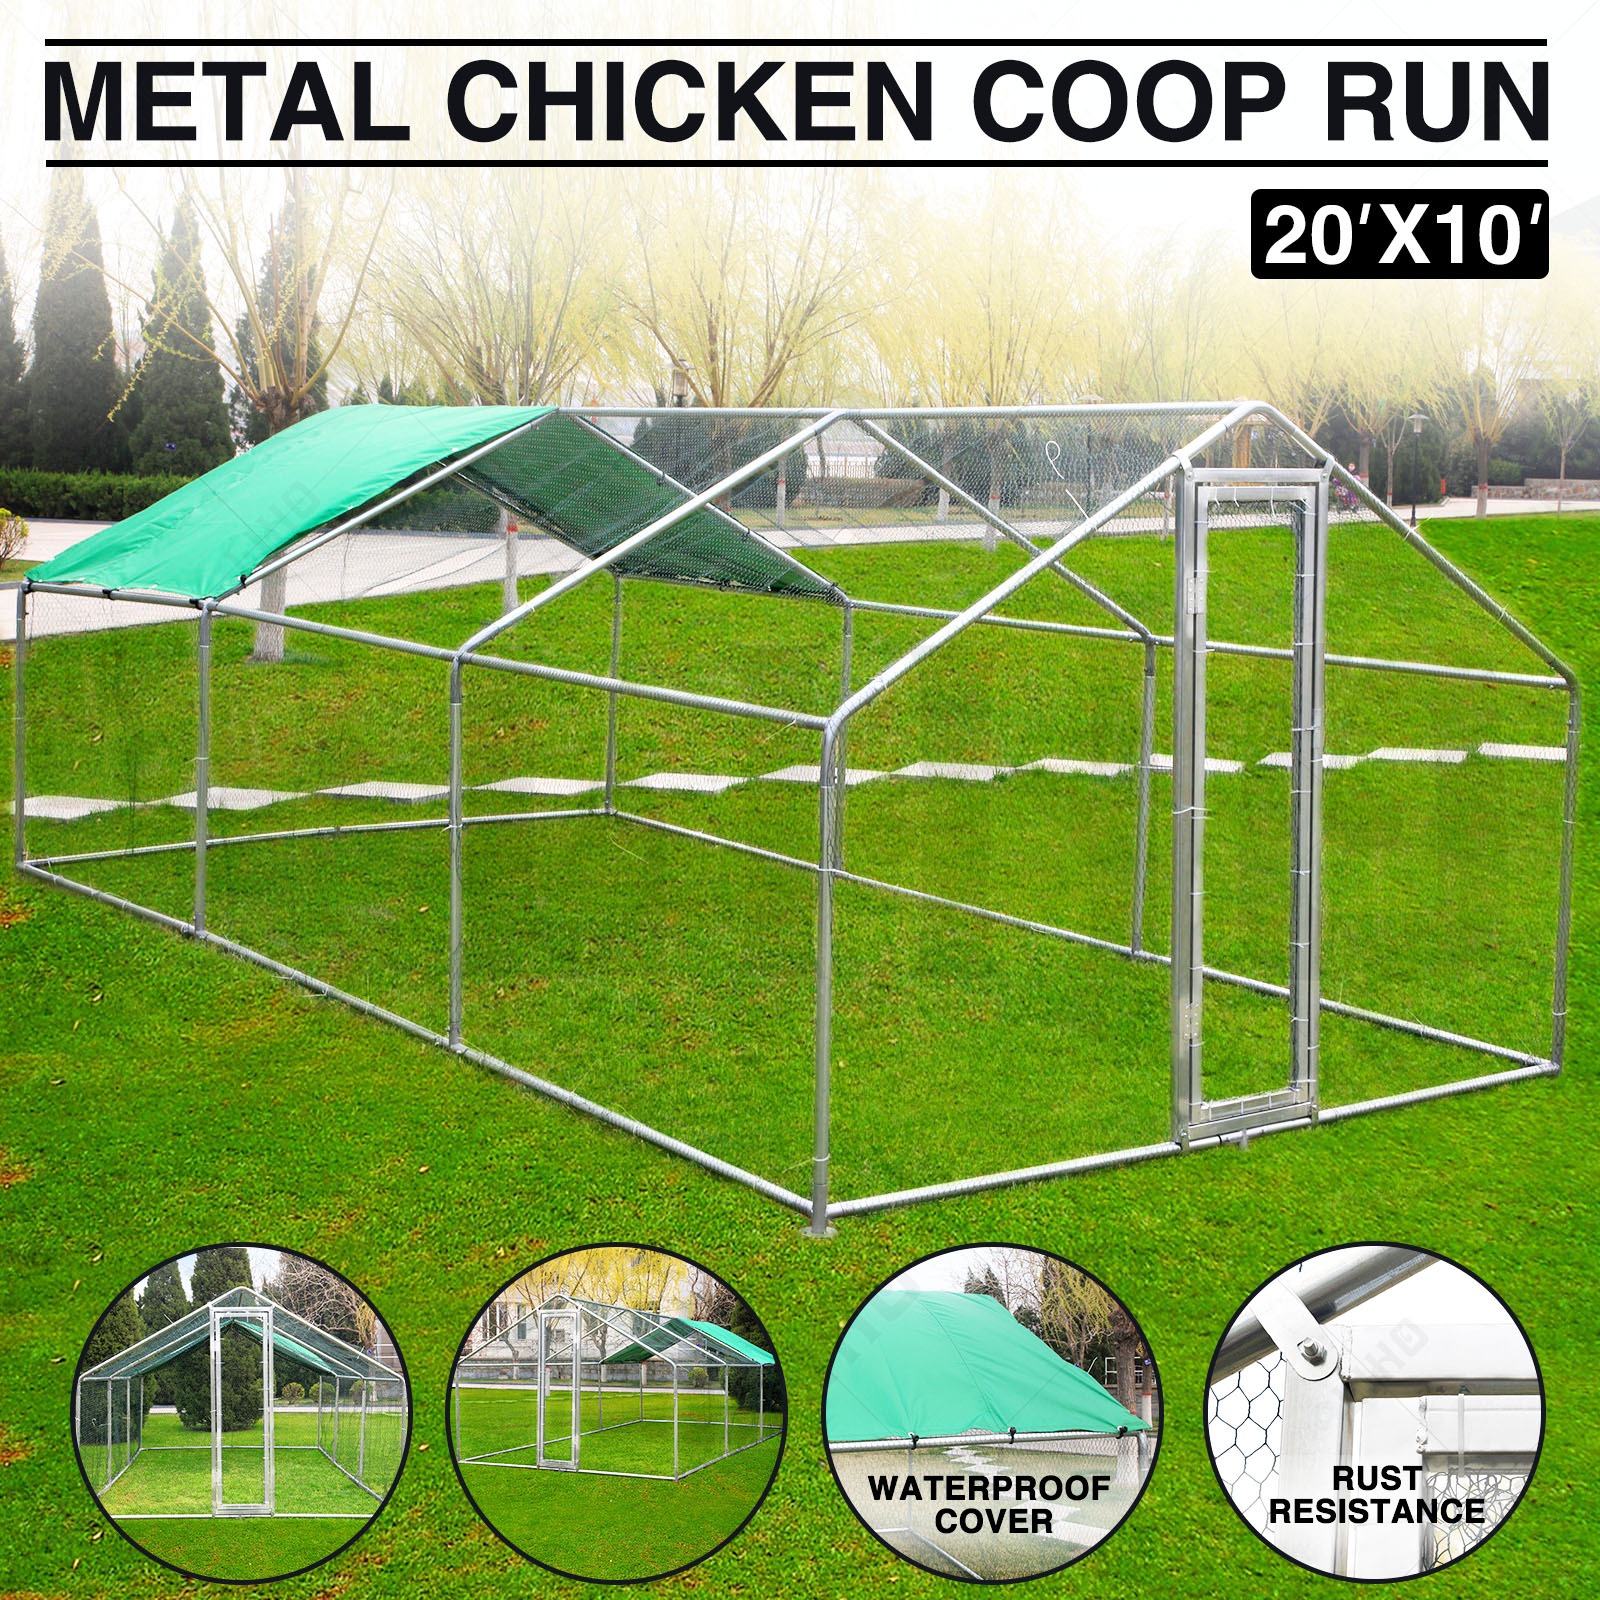 Walk In Chicken House 20x10 ft large metal chicken coop run walk in cage poultry rabbit